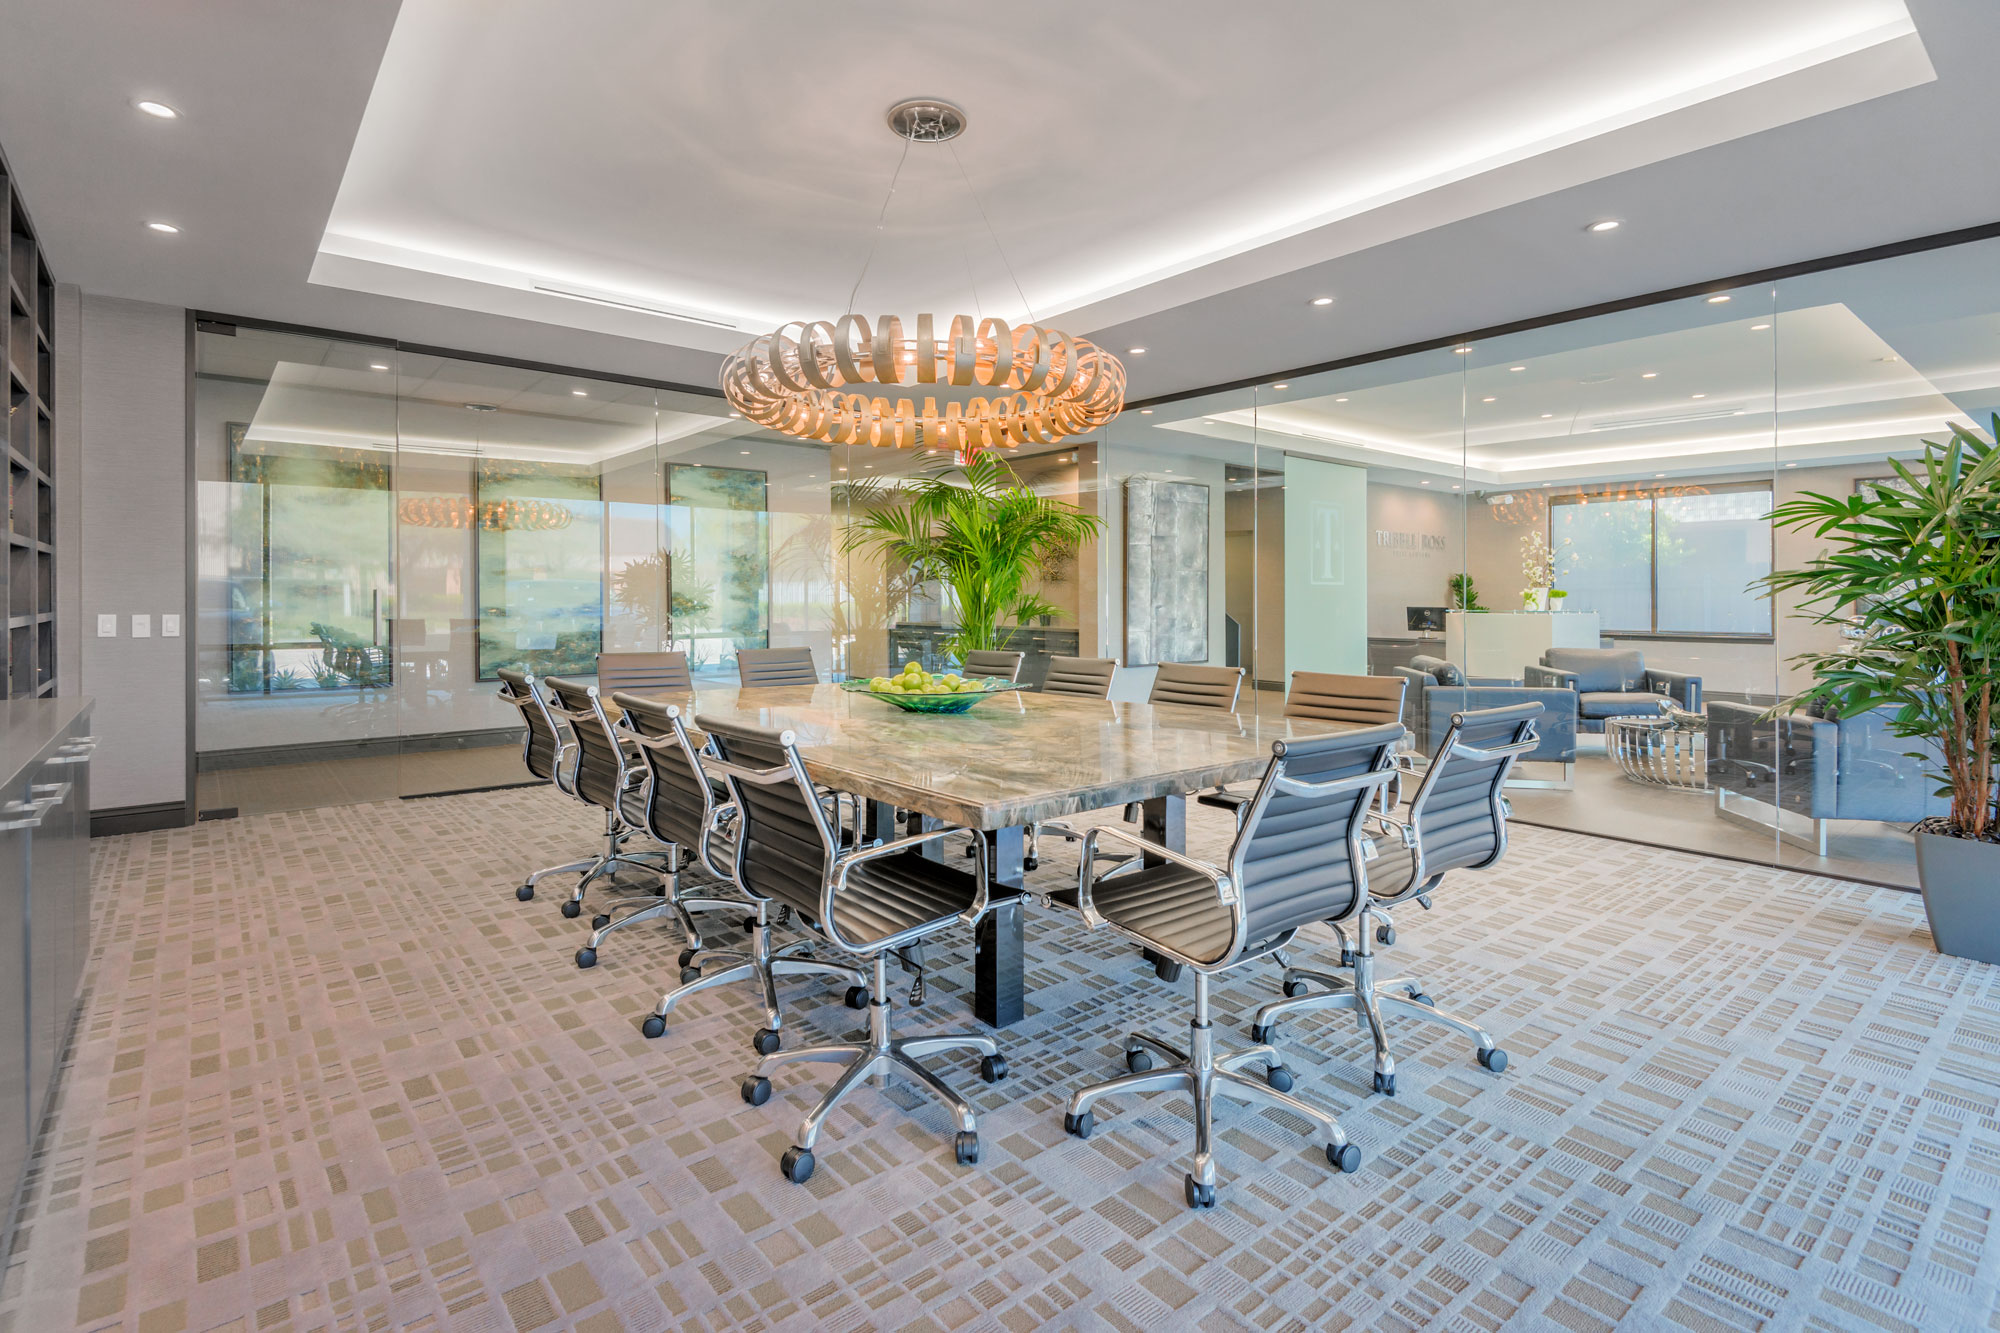 Wogan_Design_Interior_Design_Houston_Law_Office006